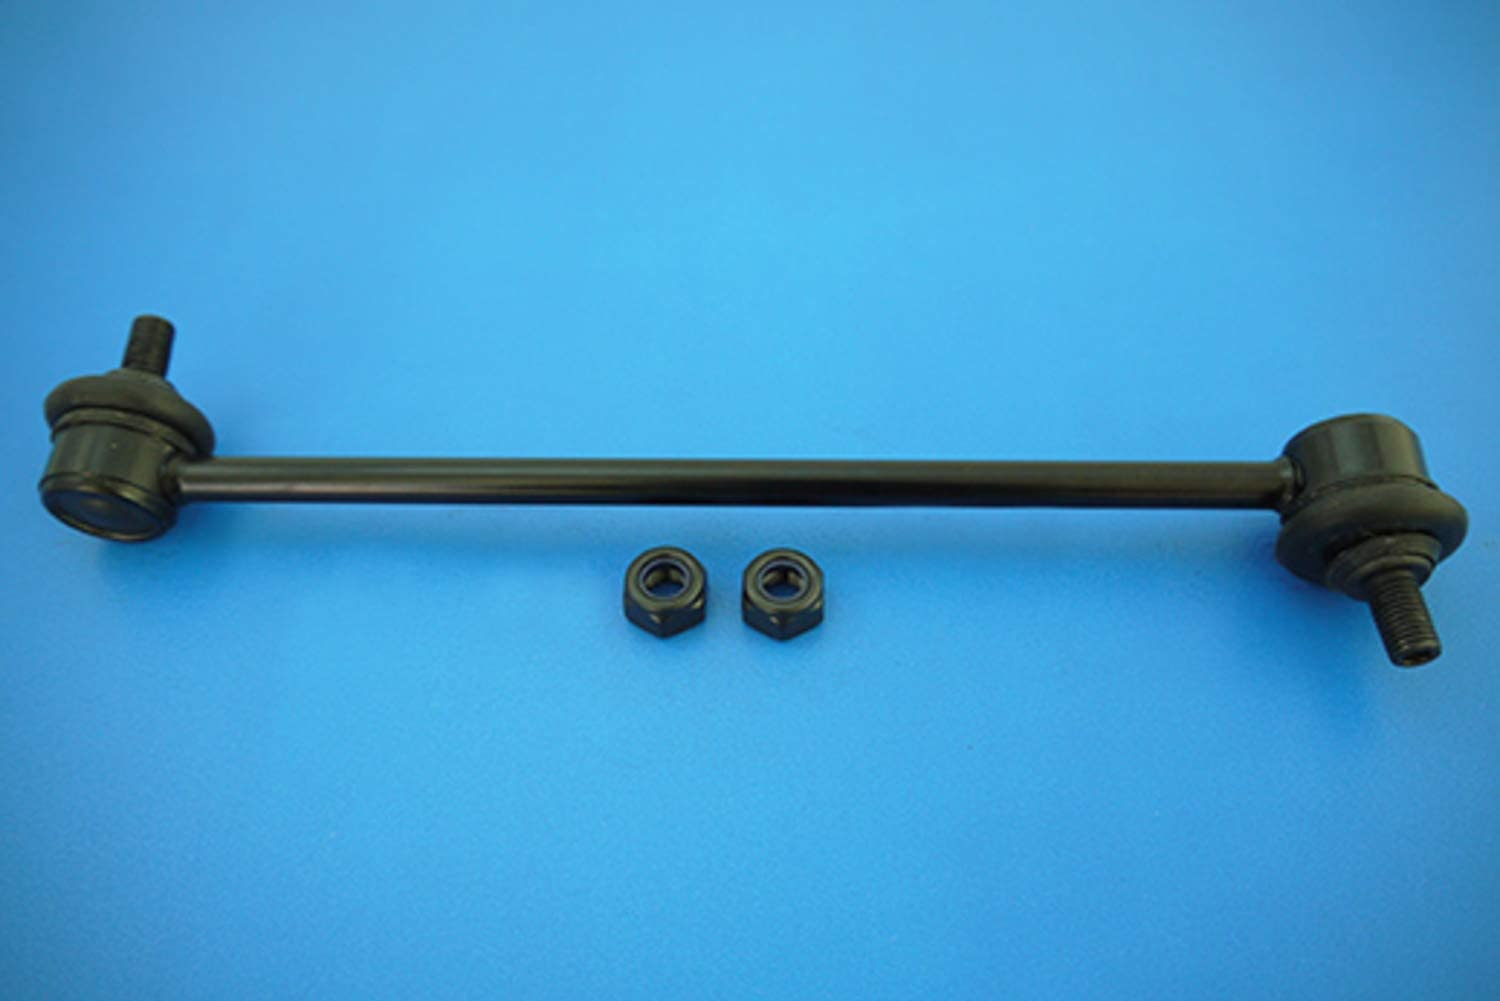 2009 fits Lexus ES350 Rear Suspension Stabilizer Bar Link With Five Years Warranty Package include One Sway Bar Link Only